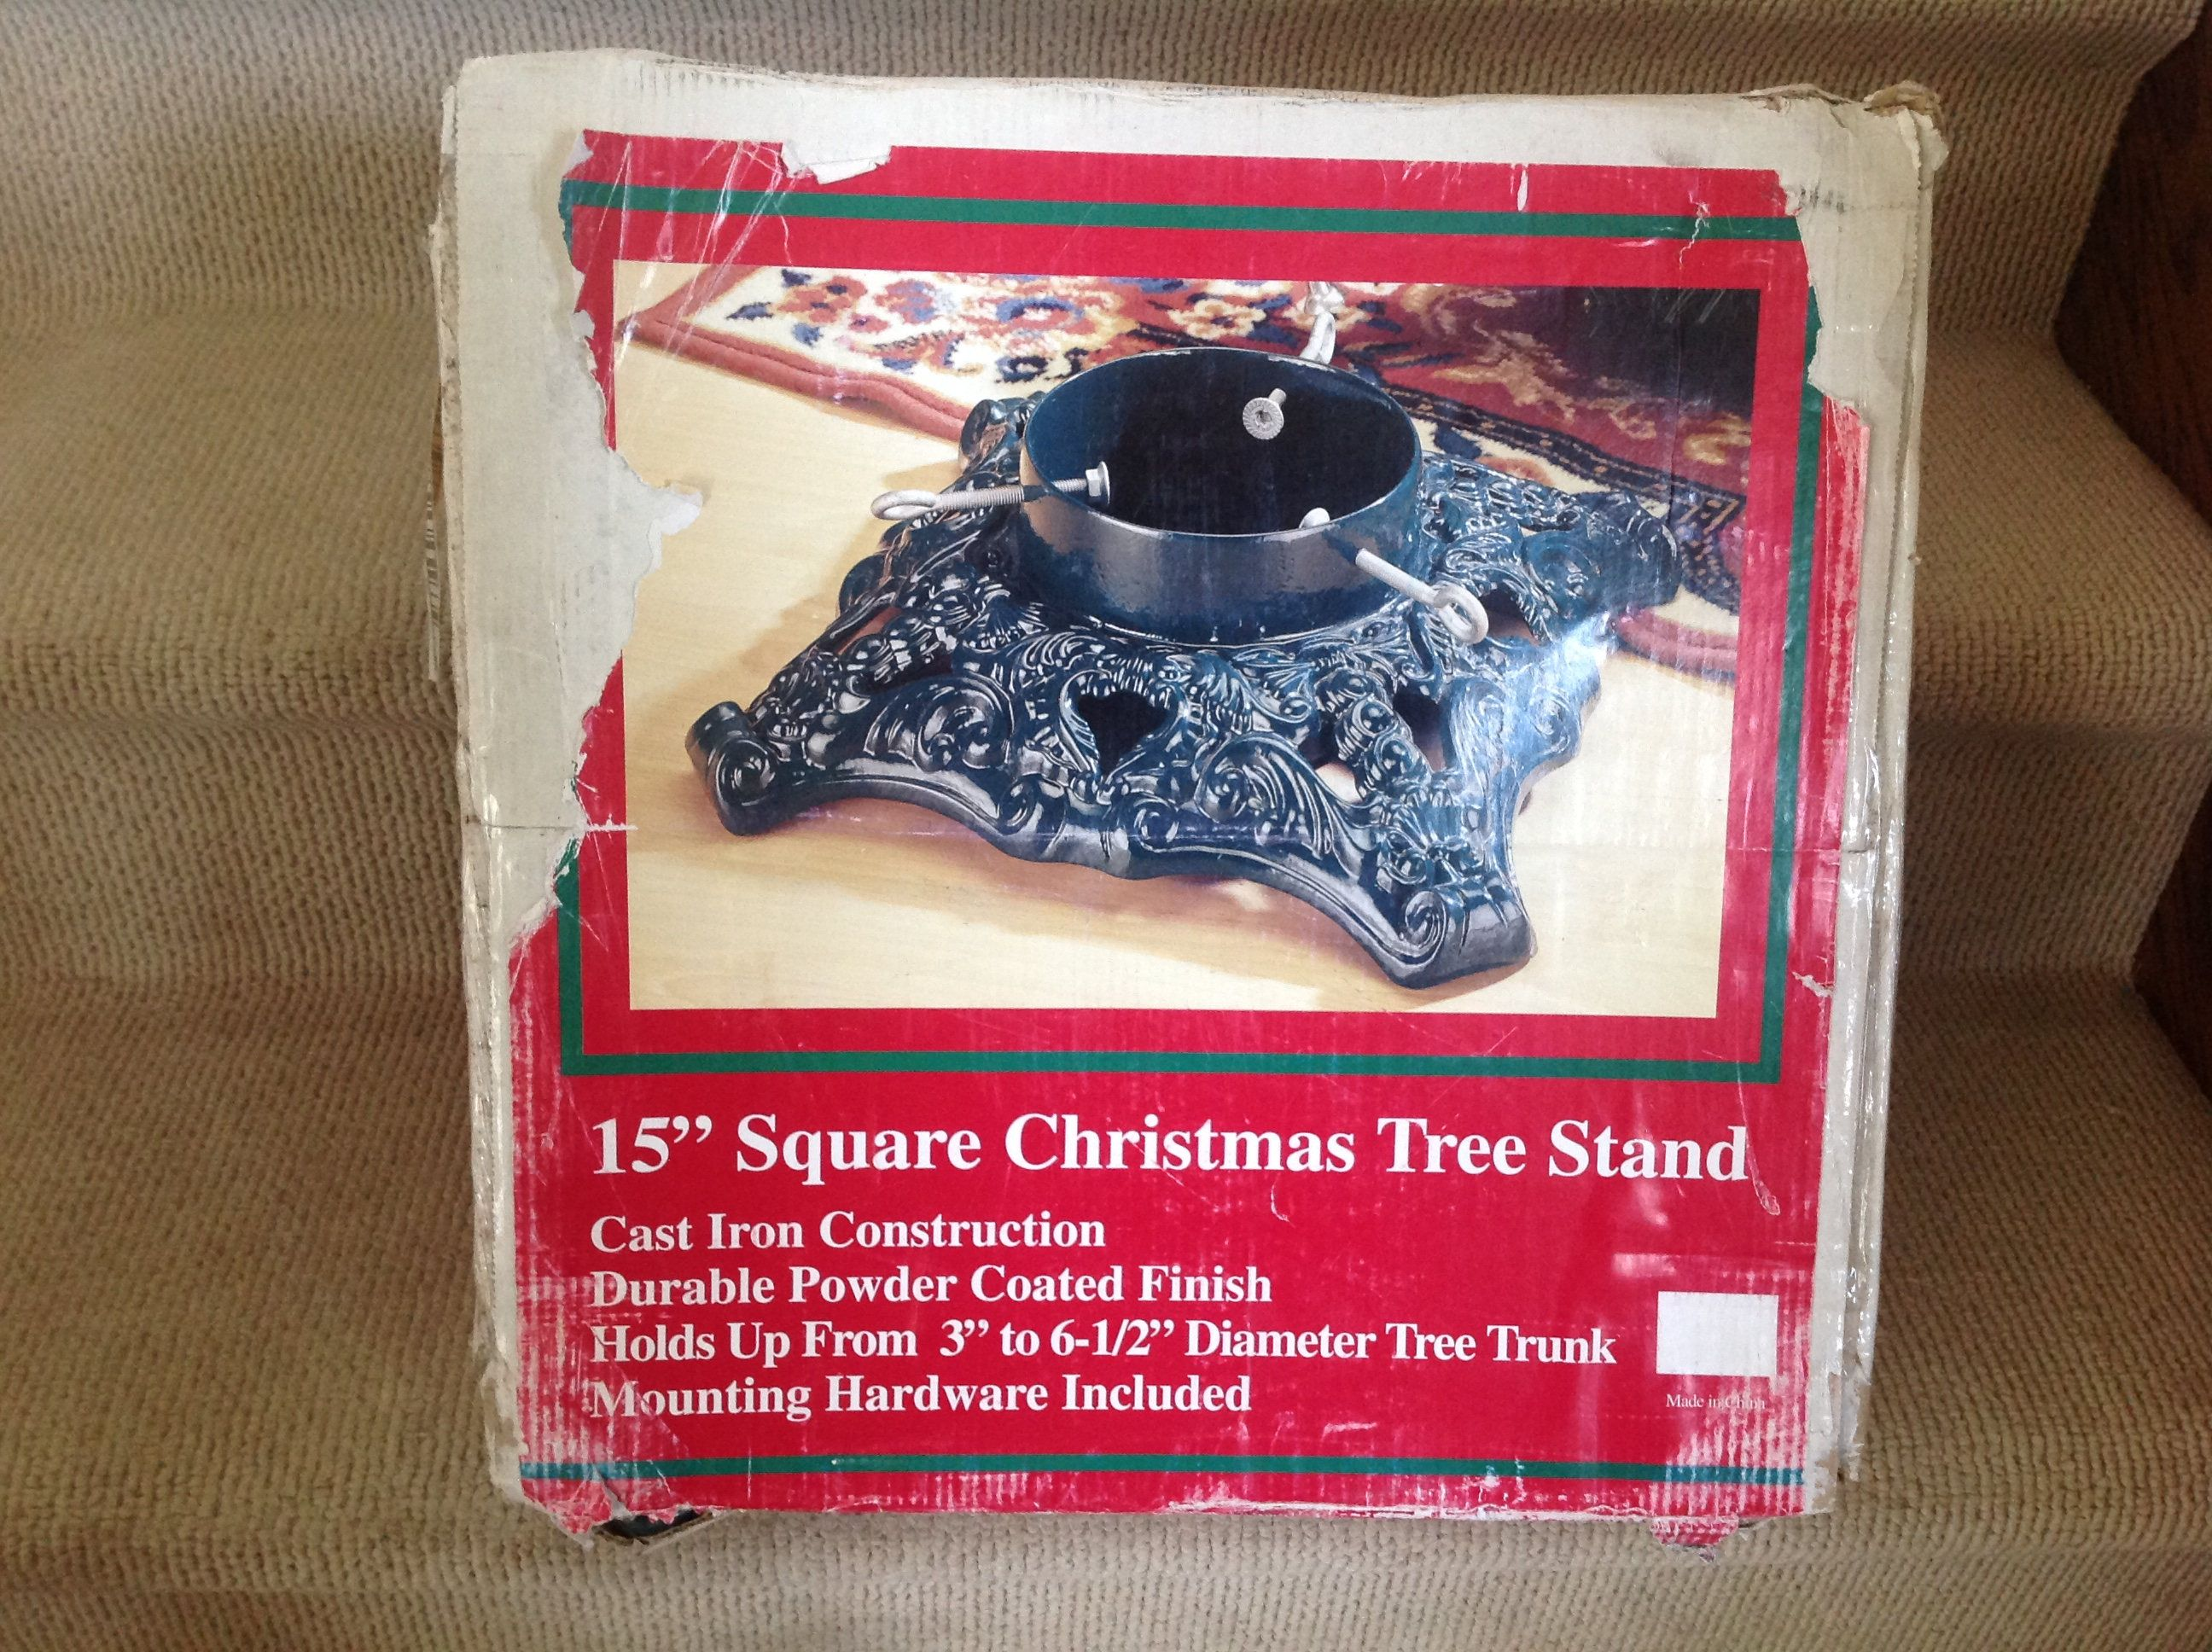 Cast iron christmas tree stand by ace hardware in